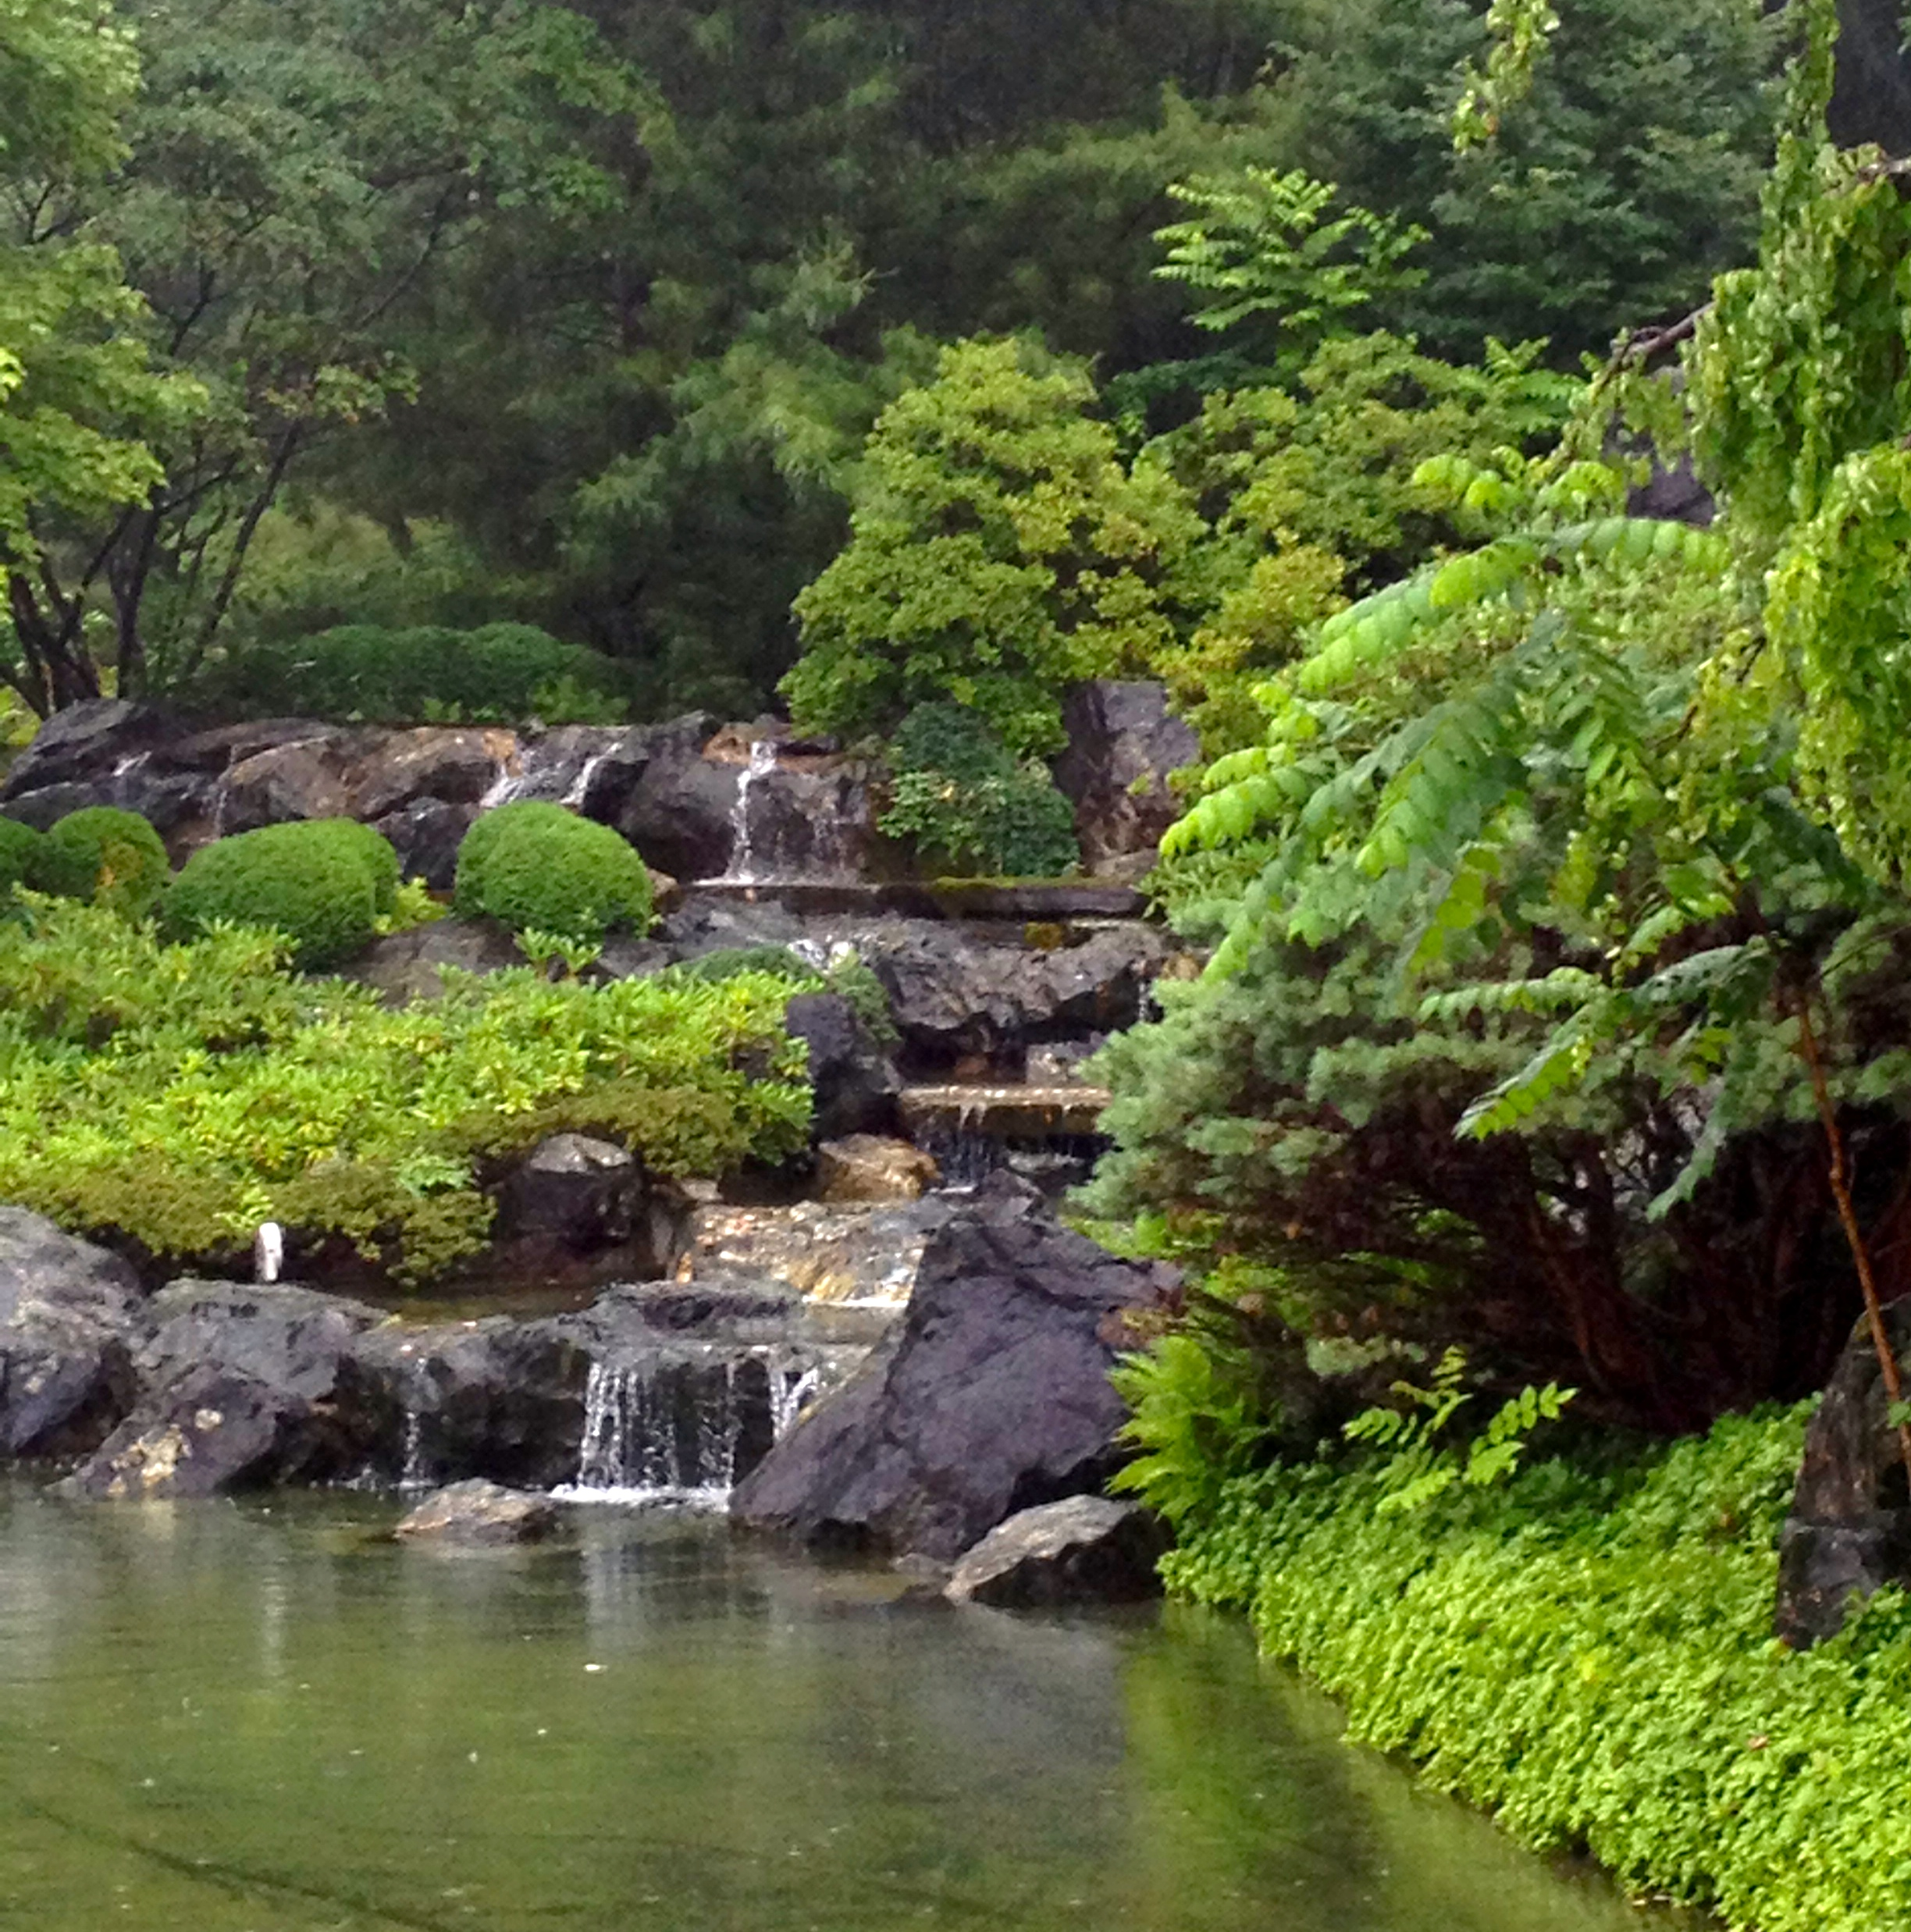 Japanese Inspired Garden In Grant Park: Gentle Acts Of Nature, Time And Man: Three Japanese